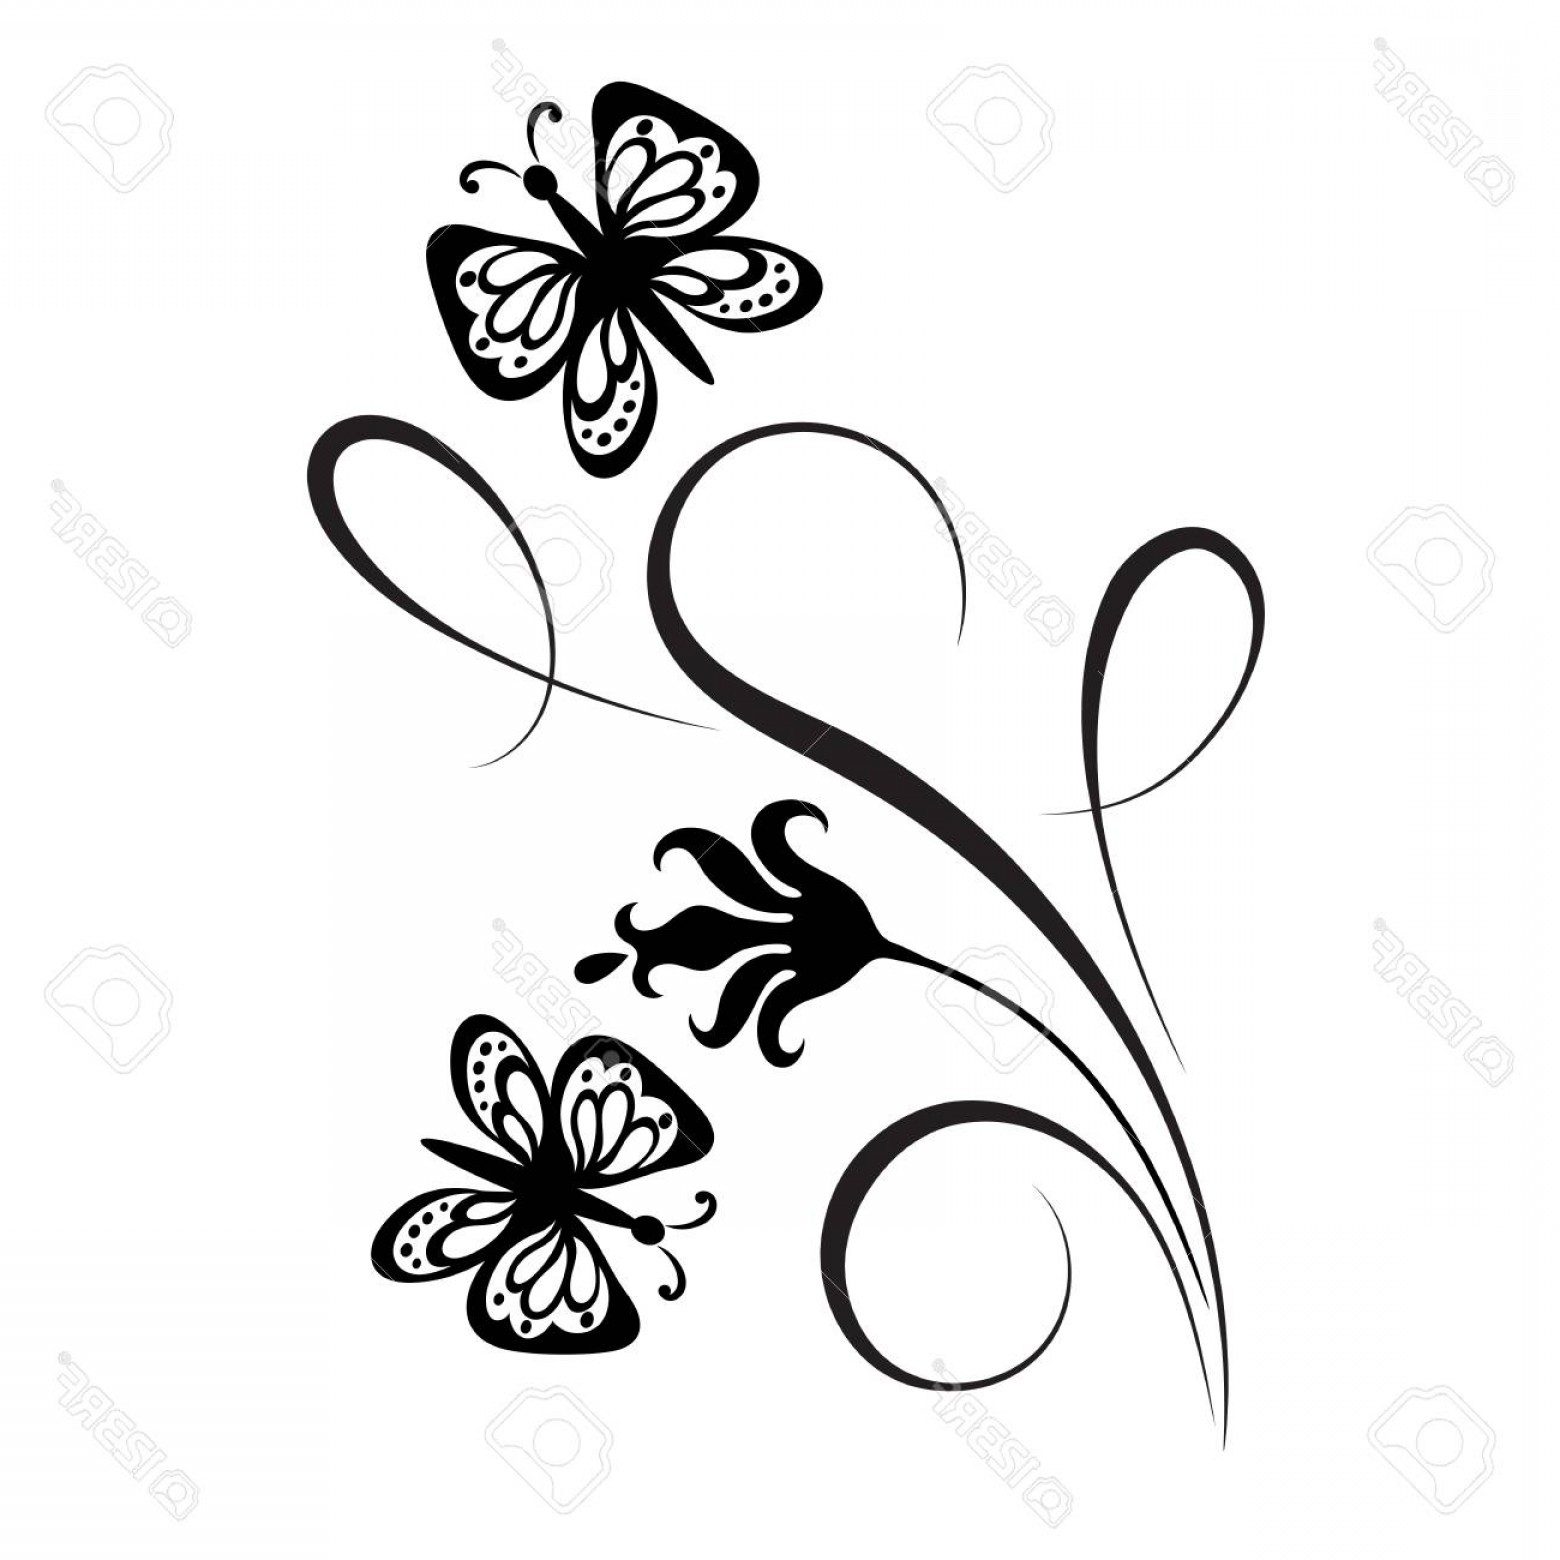 Butter Fly And Flower Vector Black And White: Photostock Vector Decorative Floral Corner Ornament With Flowers And Butterfly For Stencil Isolated On White Backgroun